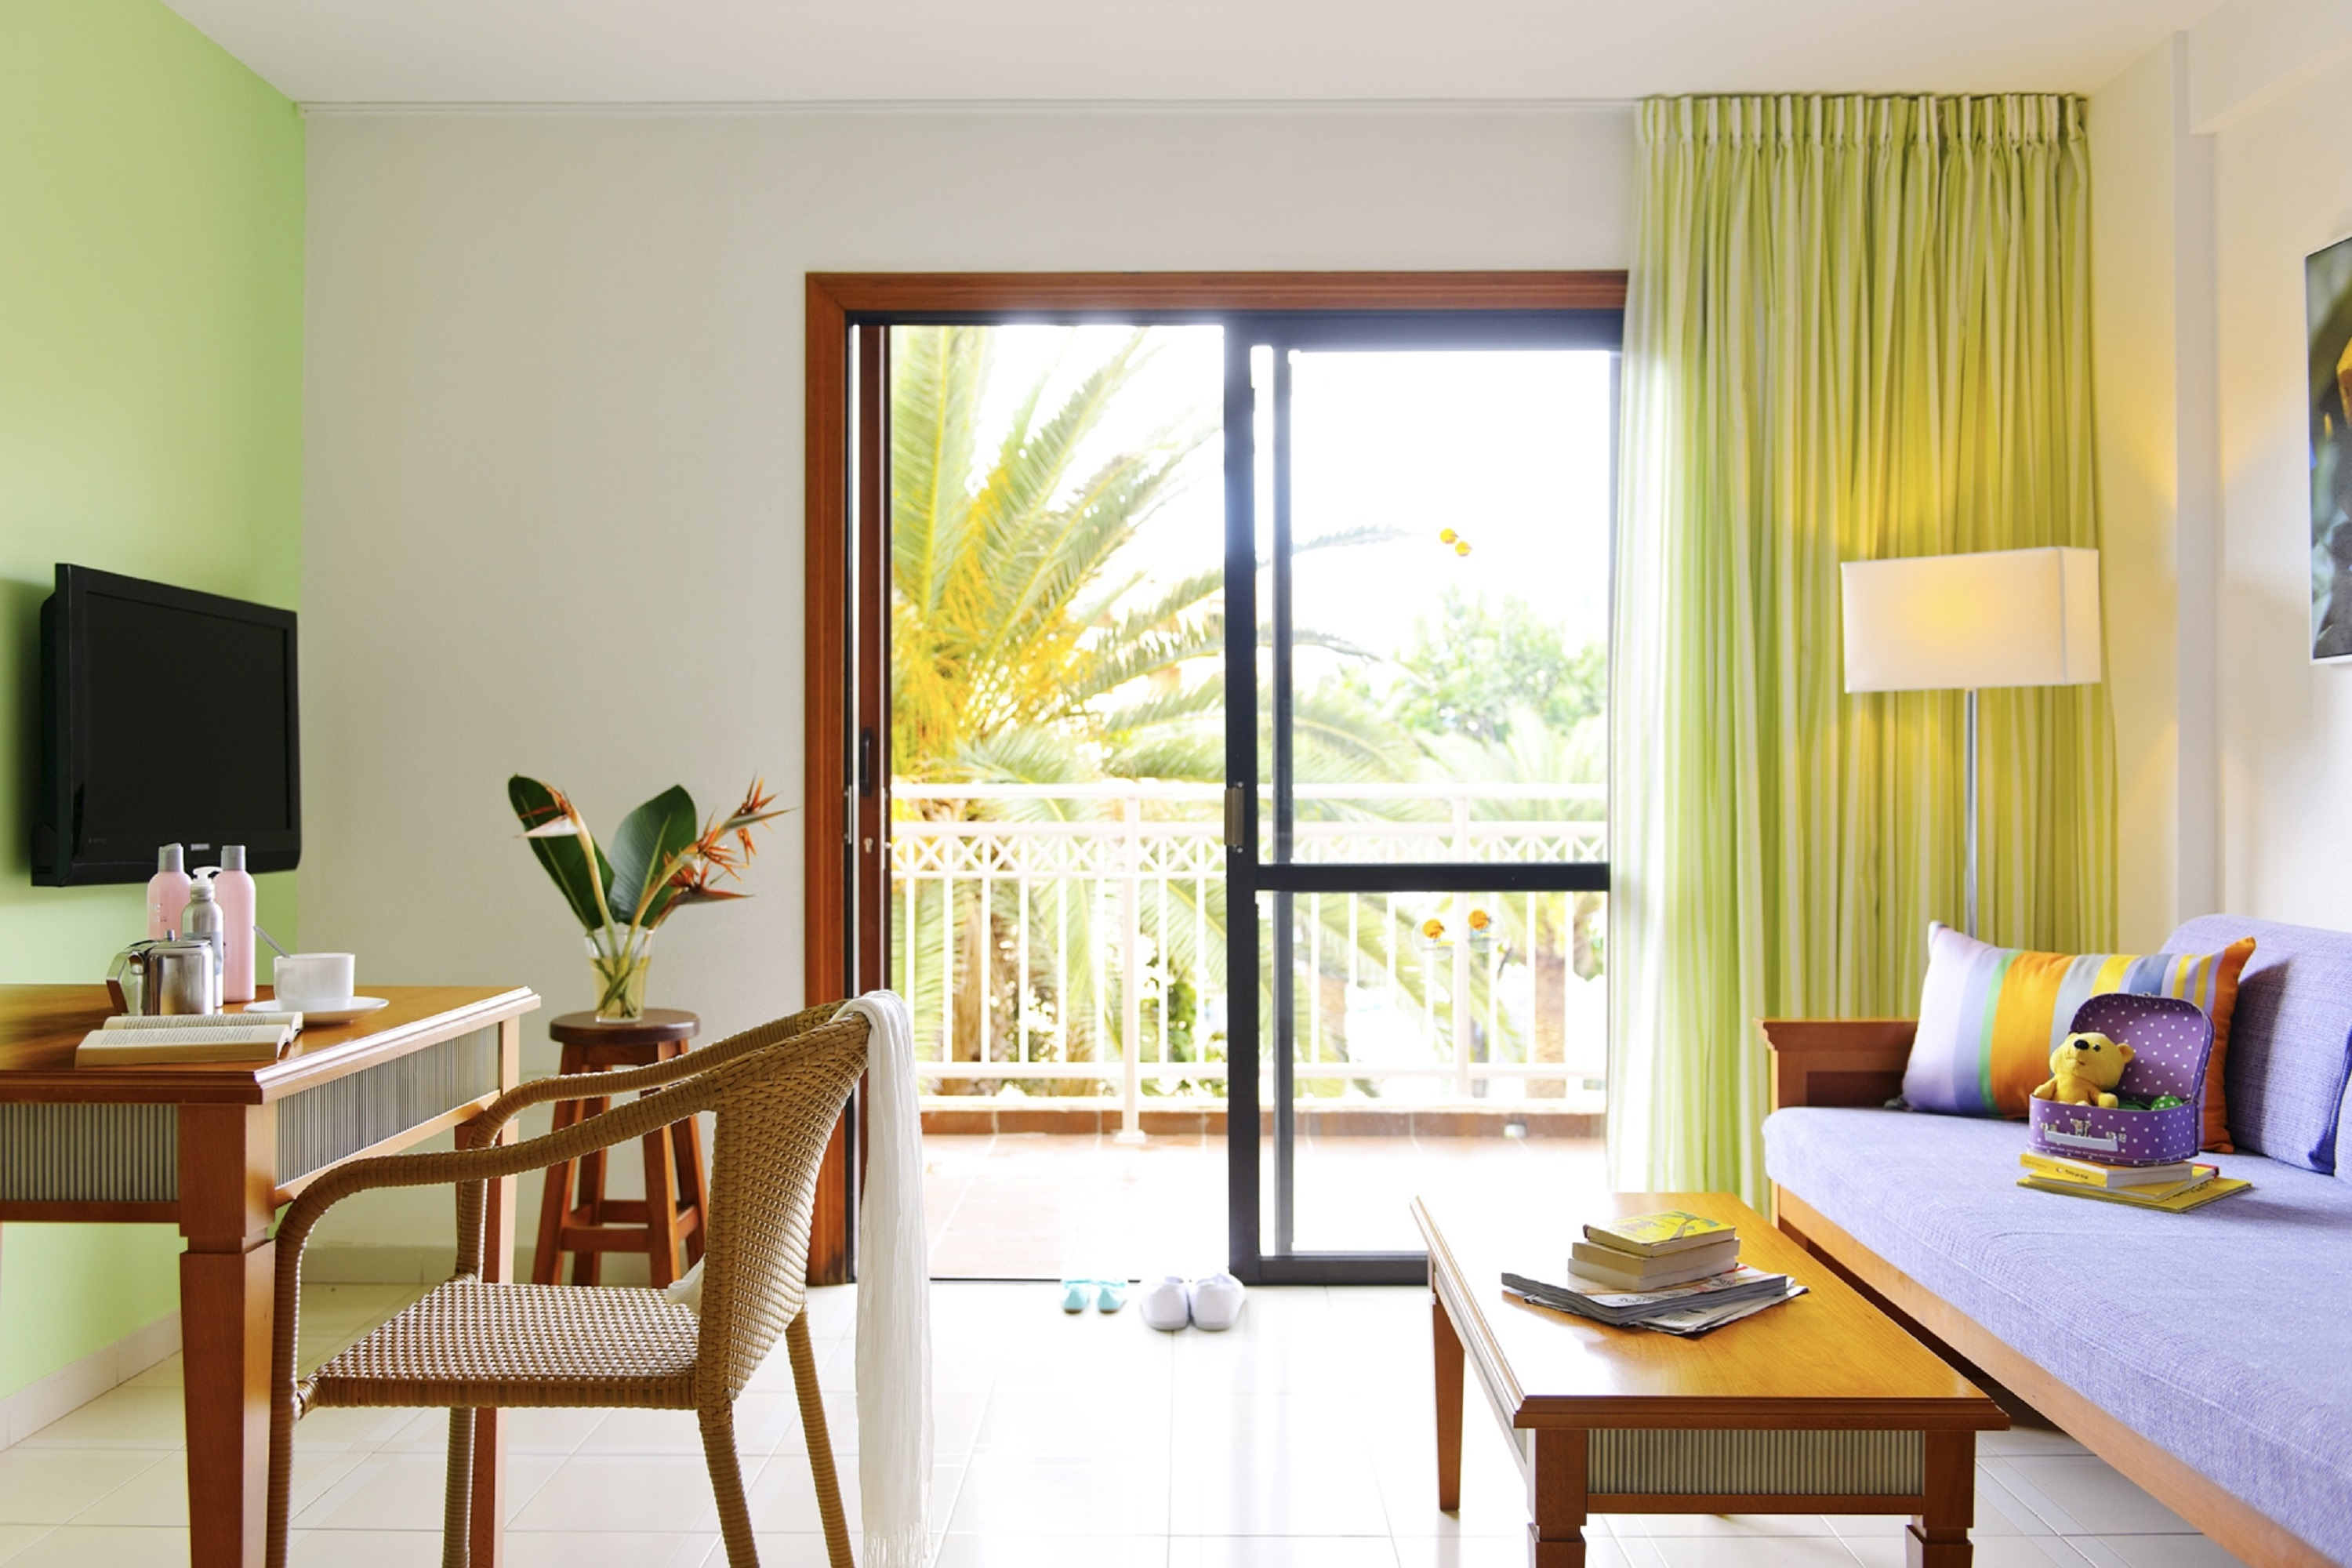 Hotel Coral Compostela Beach Rooms, OFFICIAL WEBSITE ...